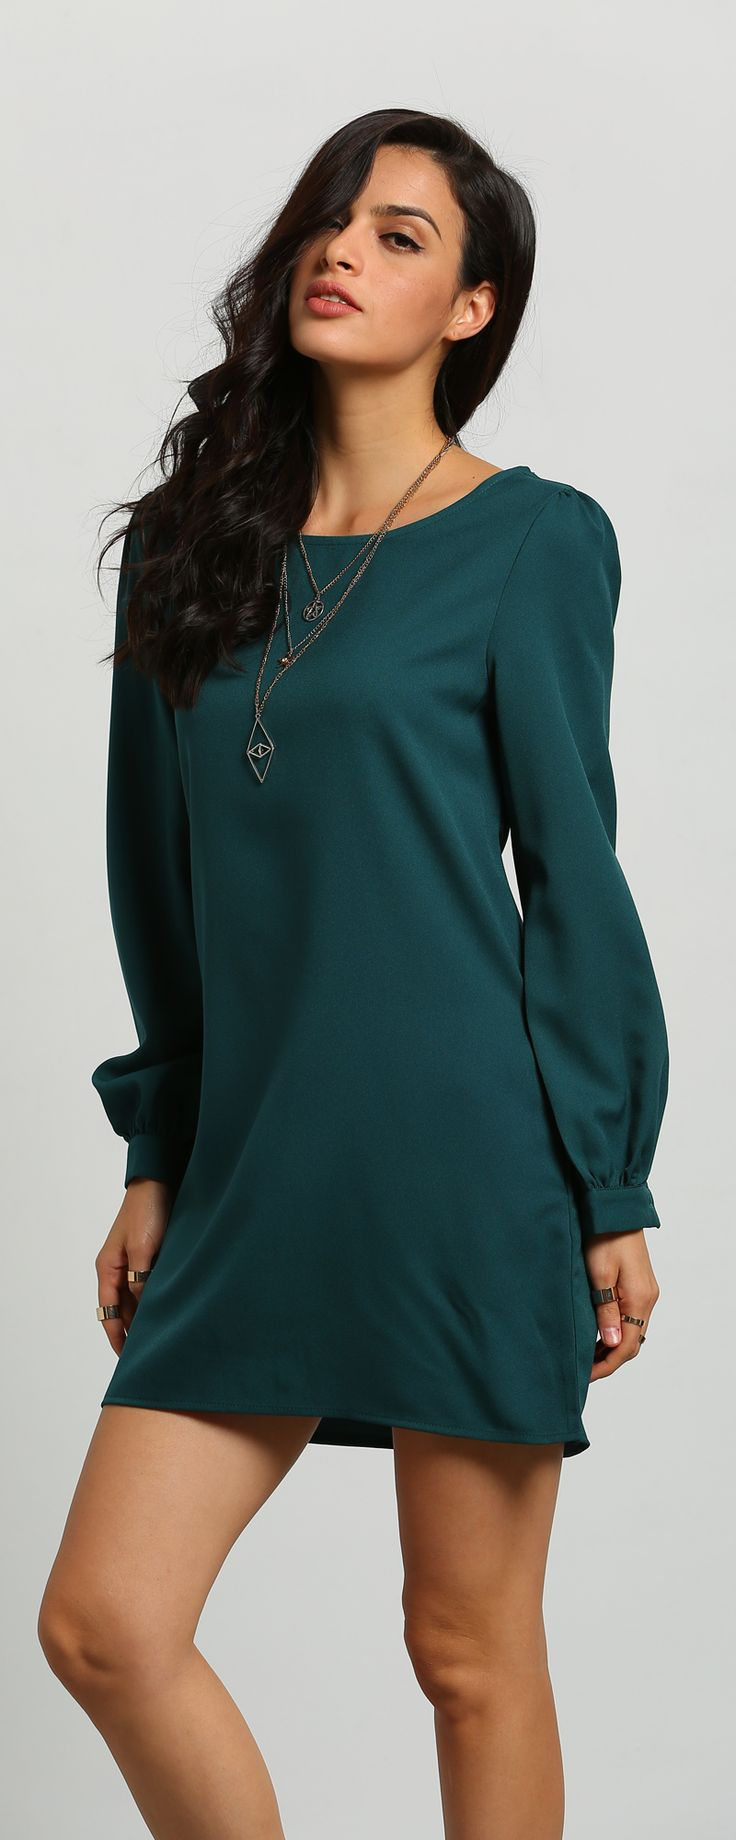 Perfect Situation Long Sleeve Casual Dress at m.shein.com